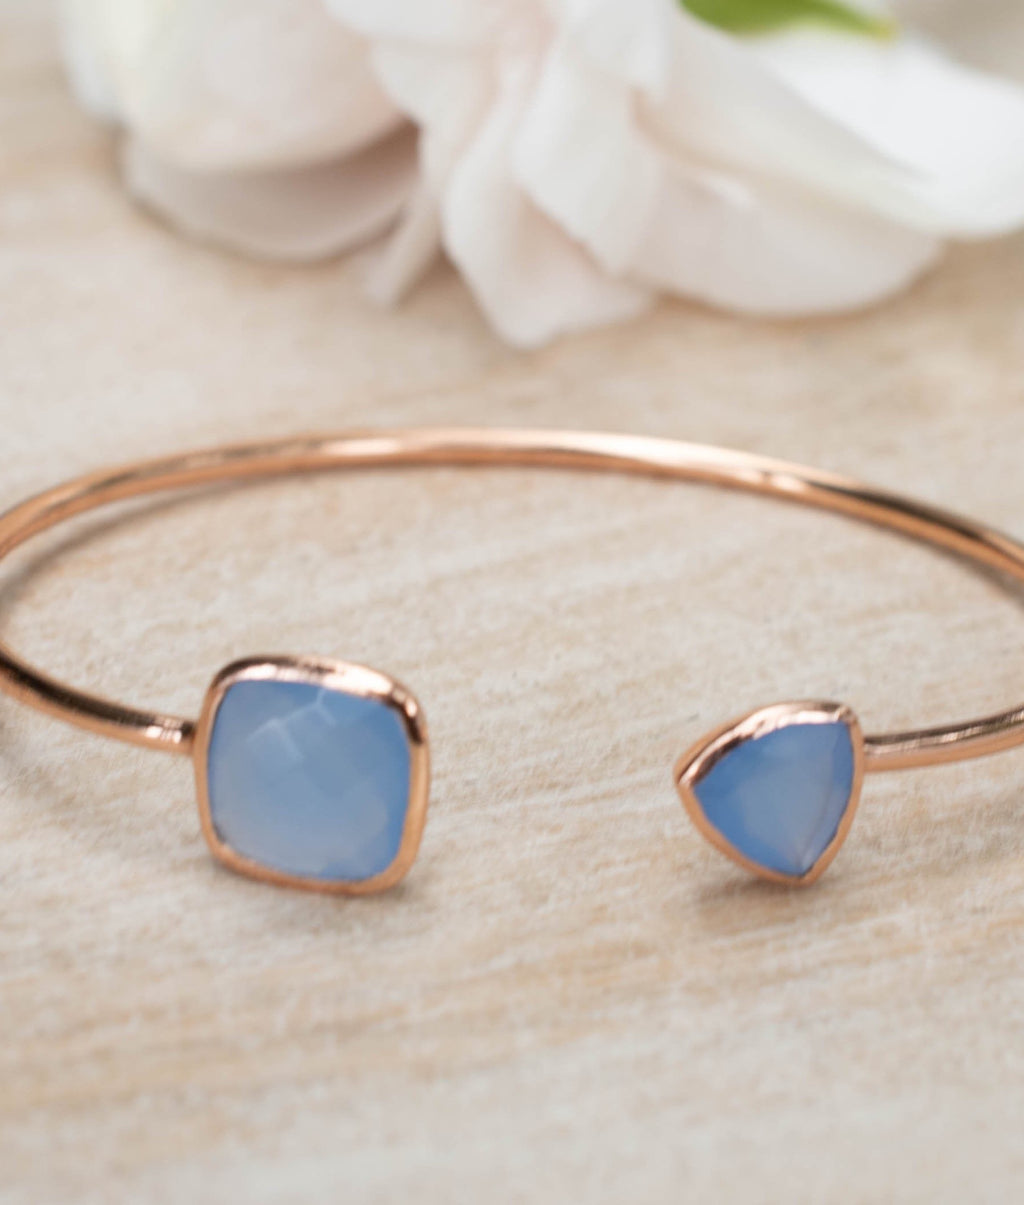 Blue Chalcedony Bangle Bracelet *Gold Plated 18k or Silver Plated or Rose Gold Plated* Gemstone * Gypsy * Adjustable * Statement * BJB009C